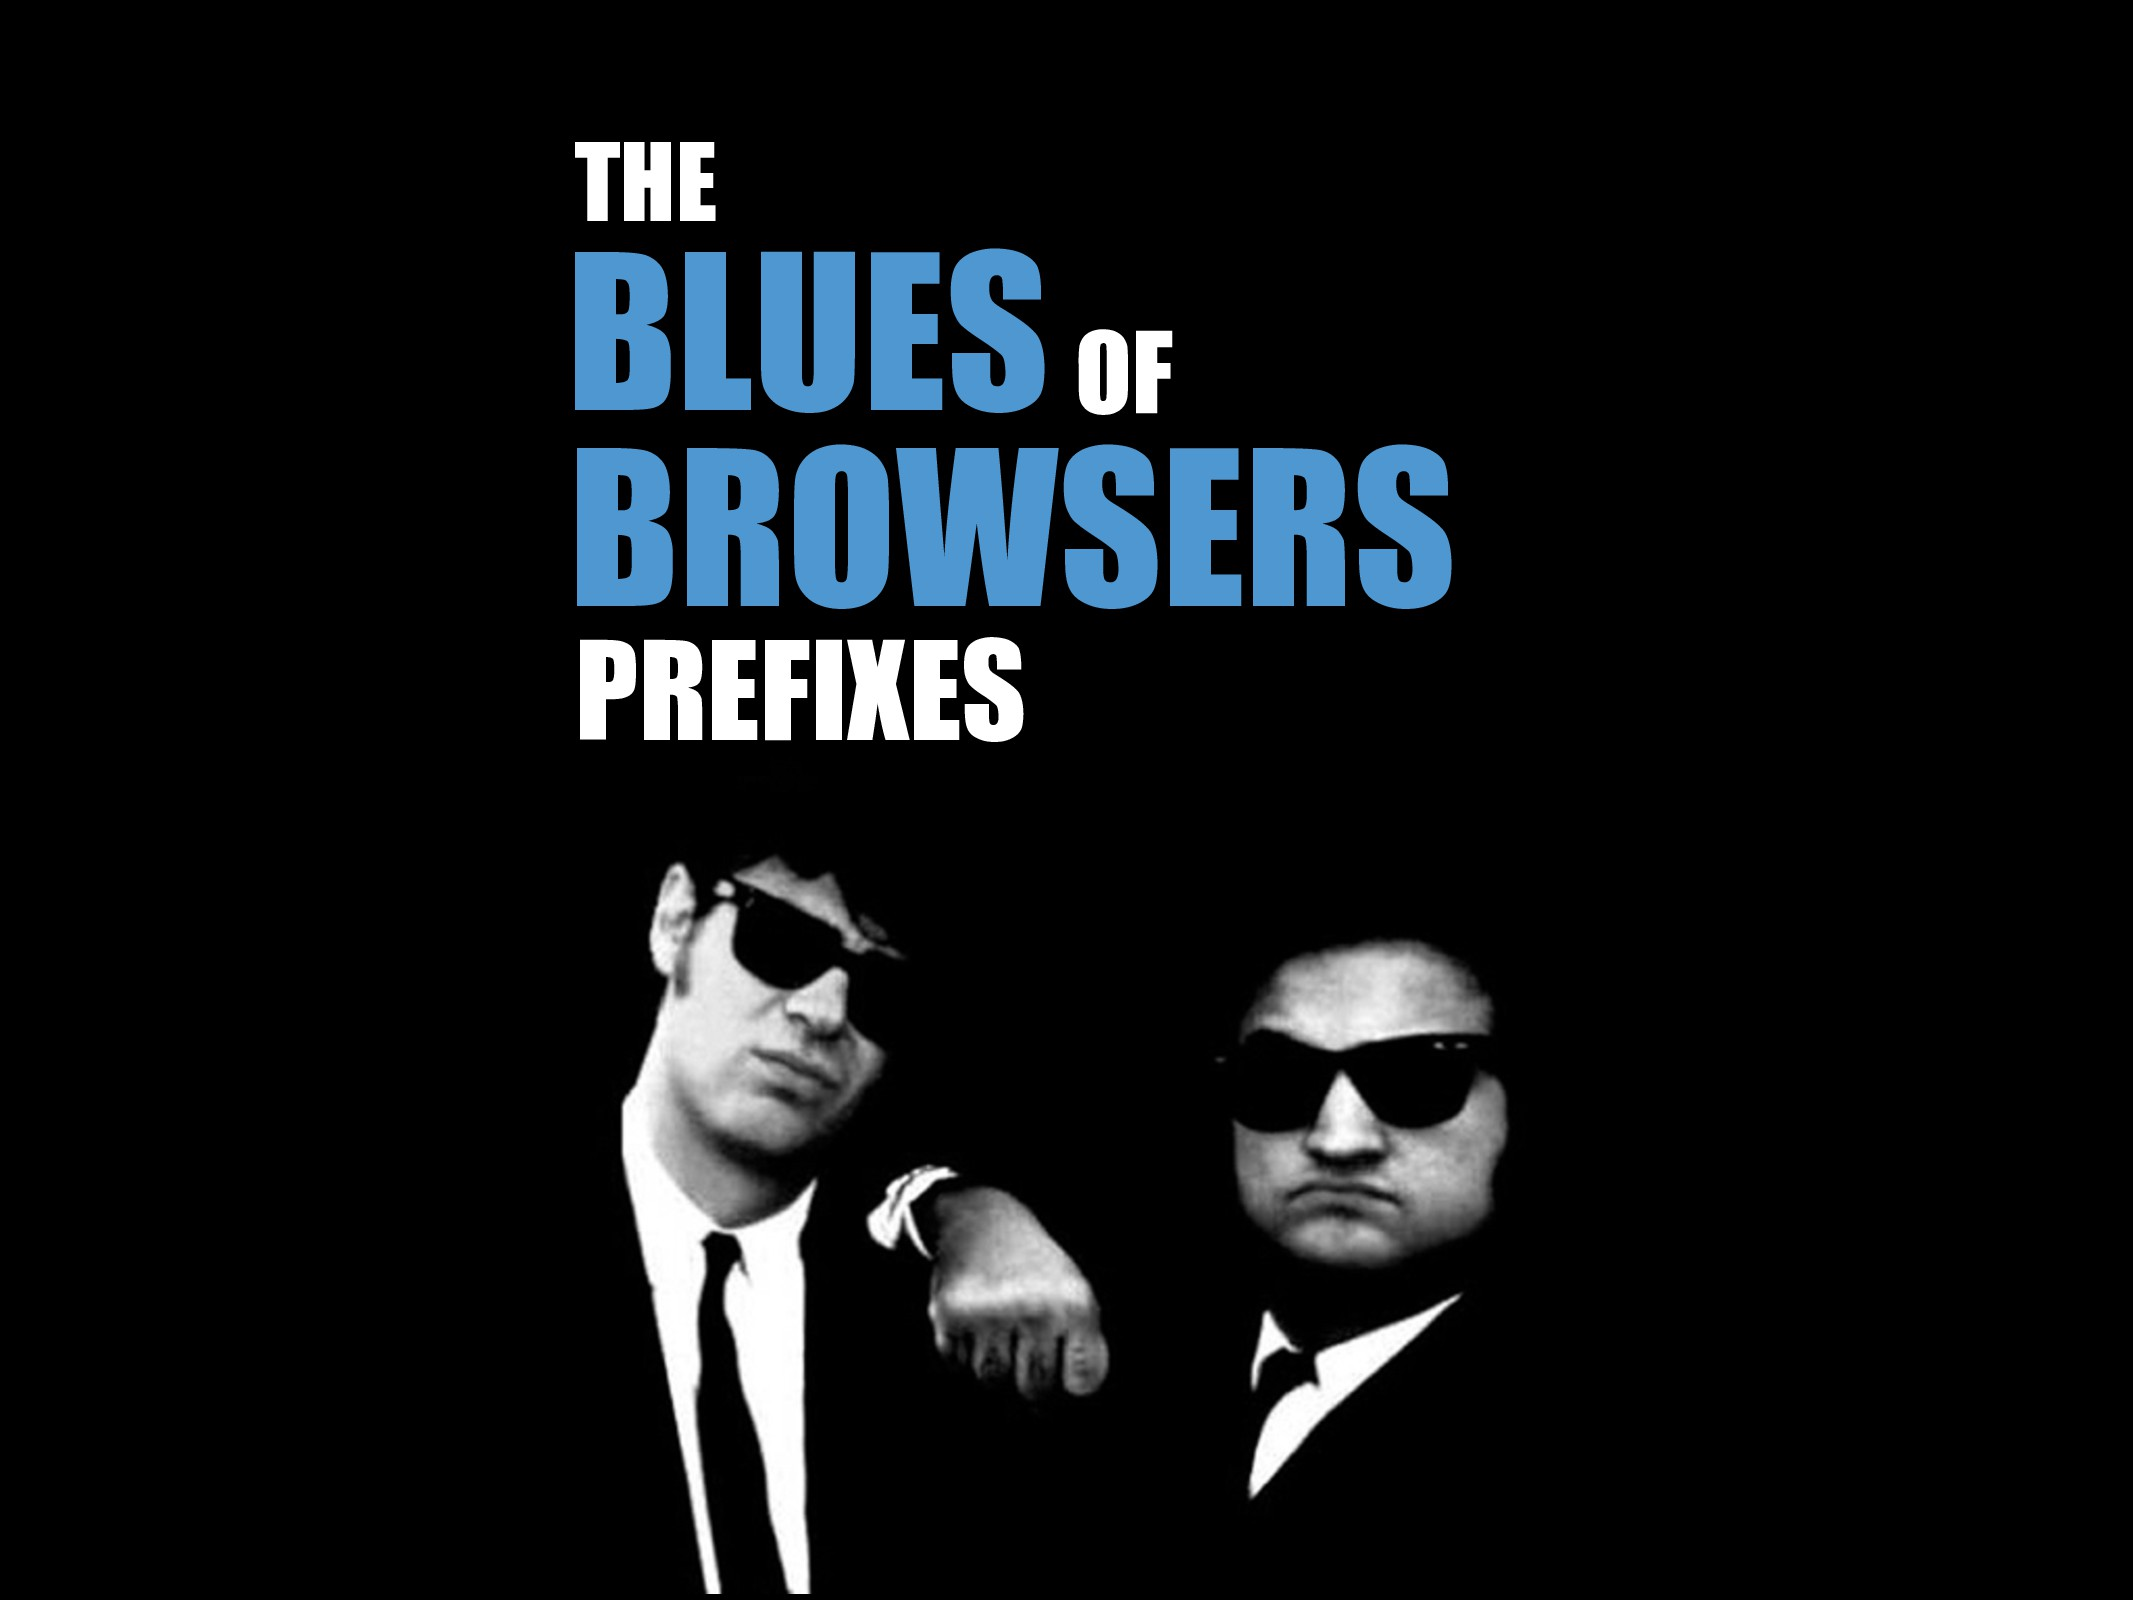 BLUES BROWSERS THE OF PREFIXES